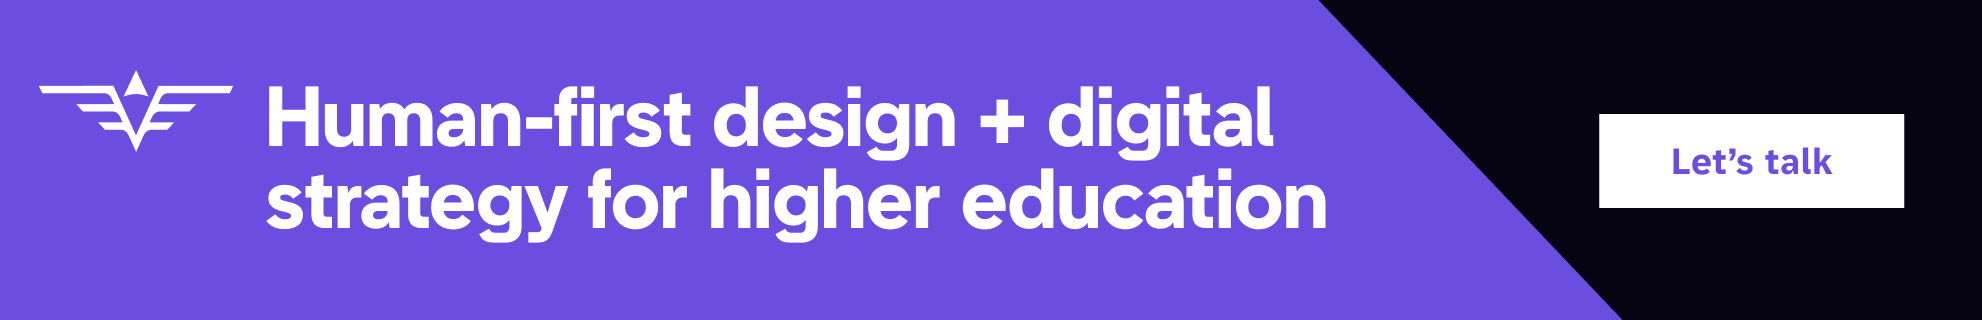 Human-first design + digital strategy for higher education. Let's talk.